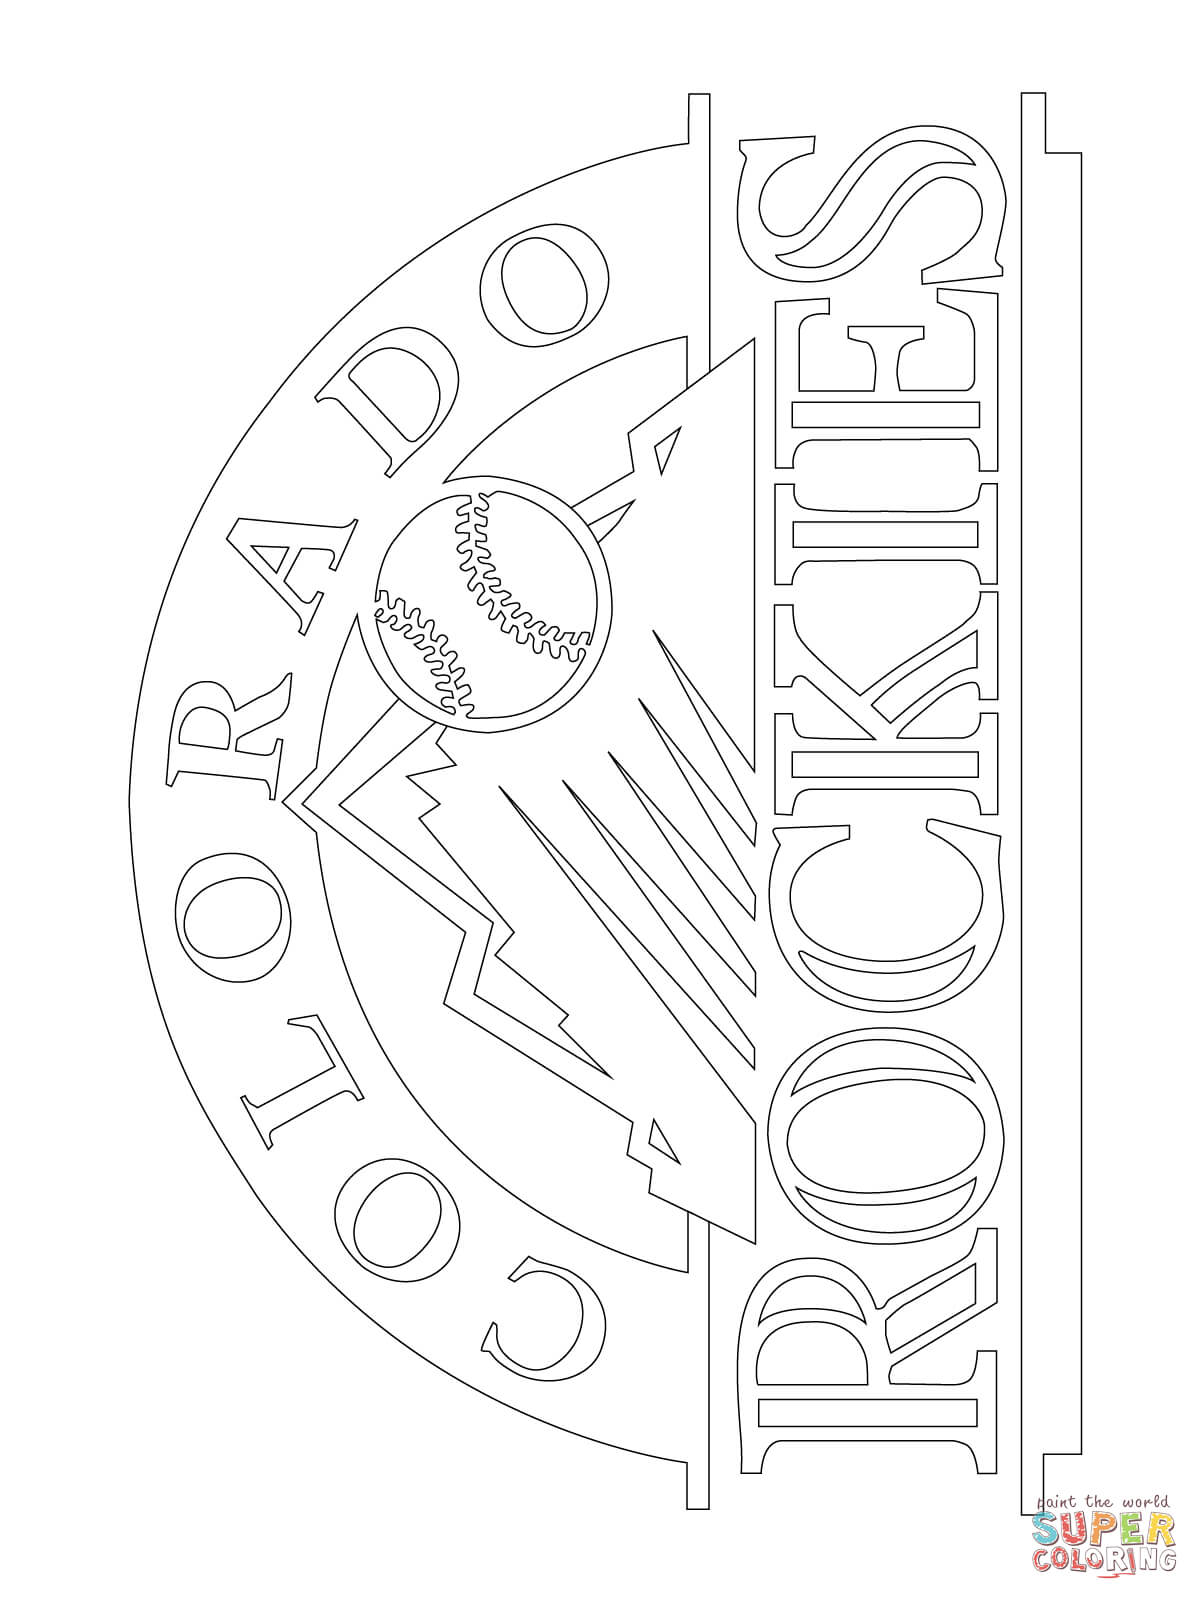 20 Of The Best Ideas For Colorado Coloring Pages